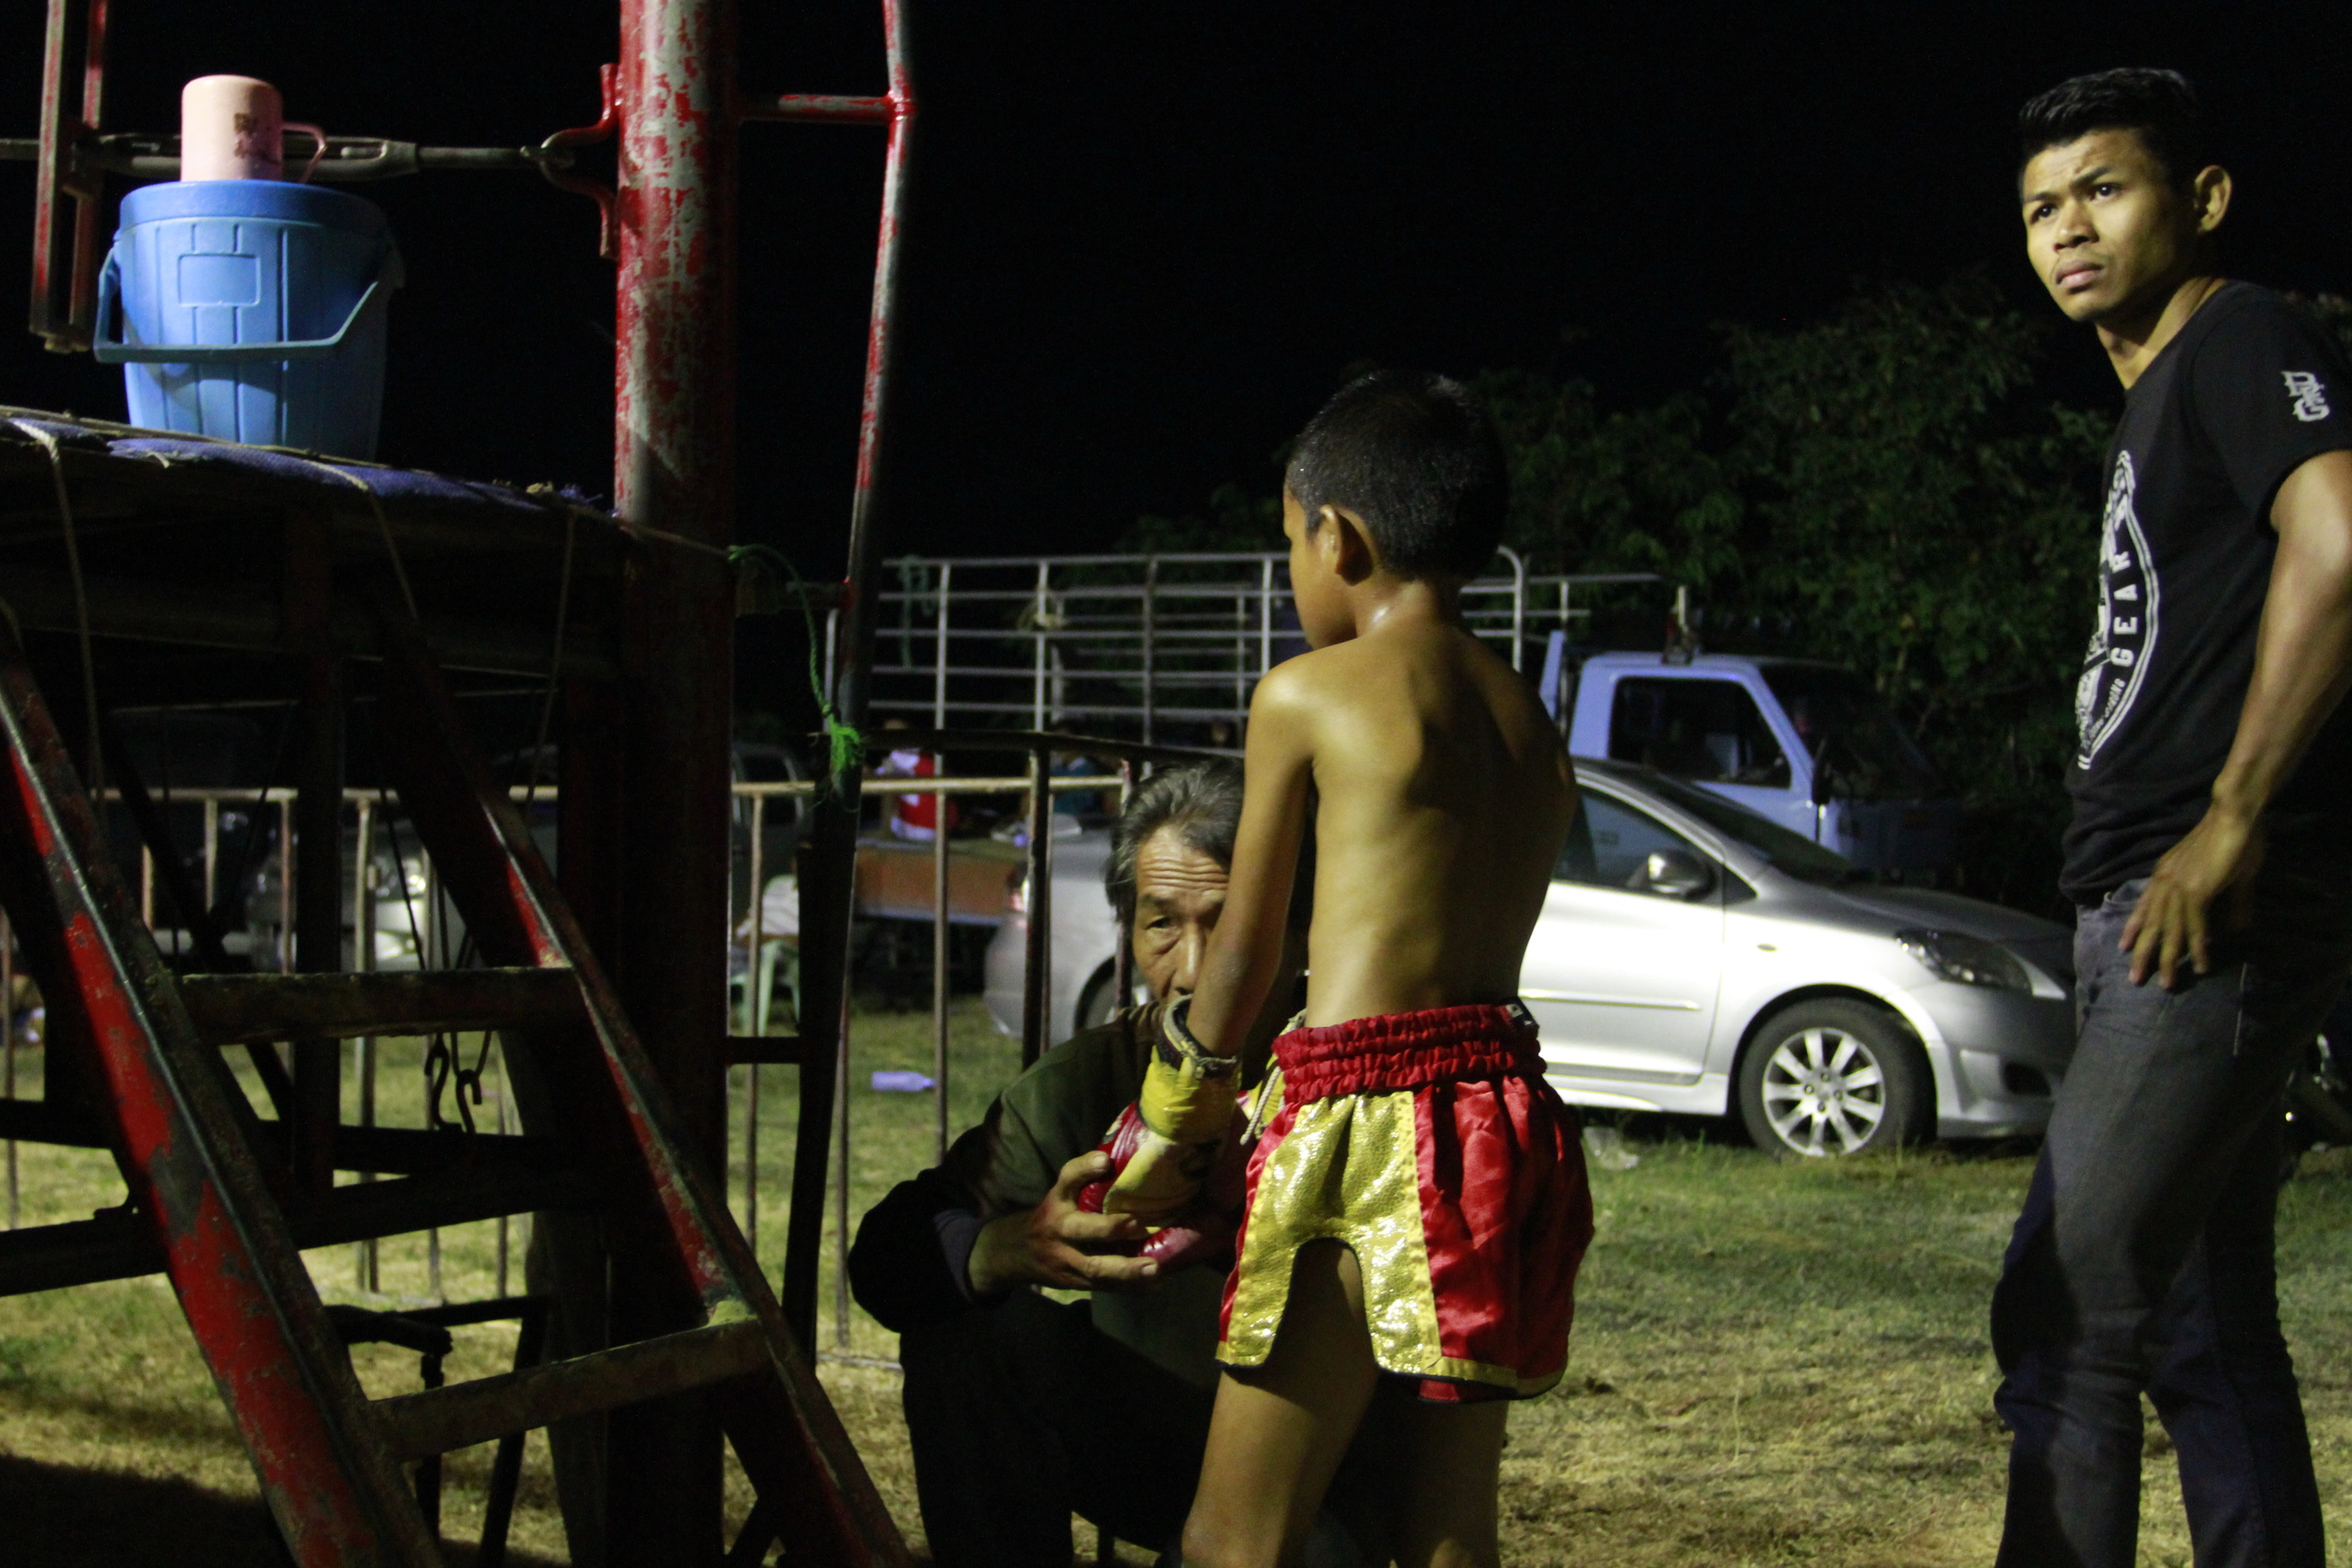 bpaet recieving a blessing just moments before stepping into the ring for the second time in two days